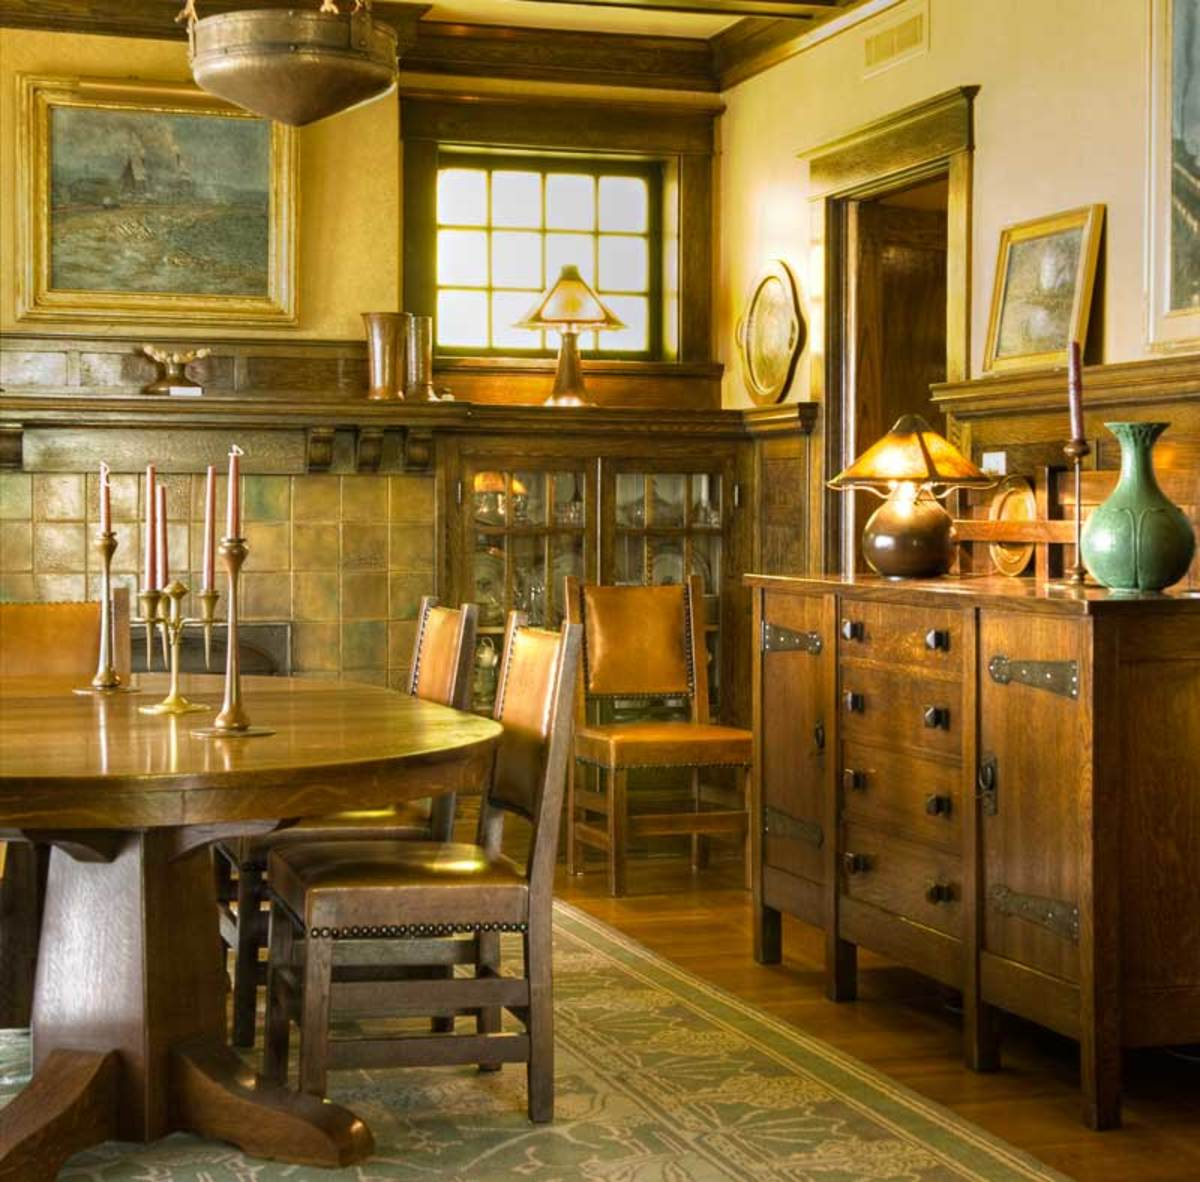 Stickley originals grace the dining room in a 1915 Prairie-influenced Foursquare in Pittsburgh.  Photo: Edward Addeo